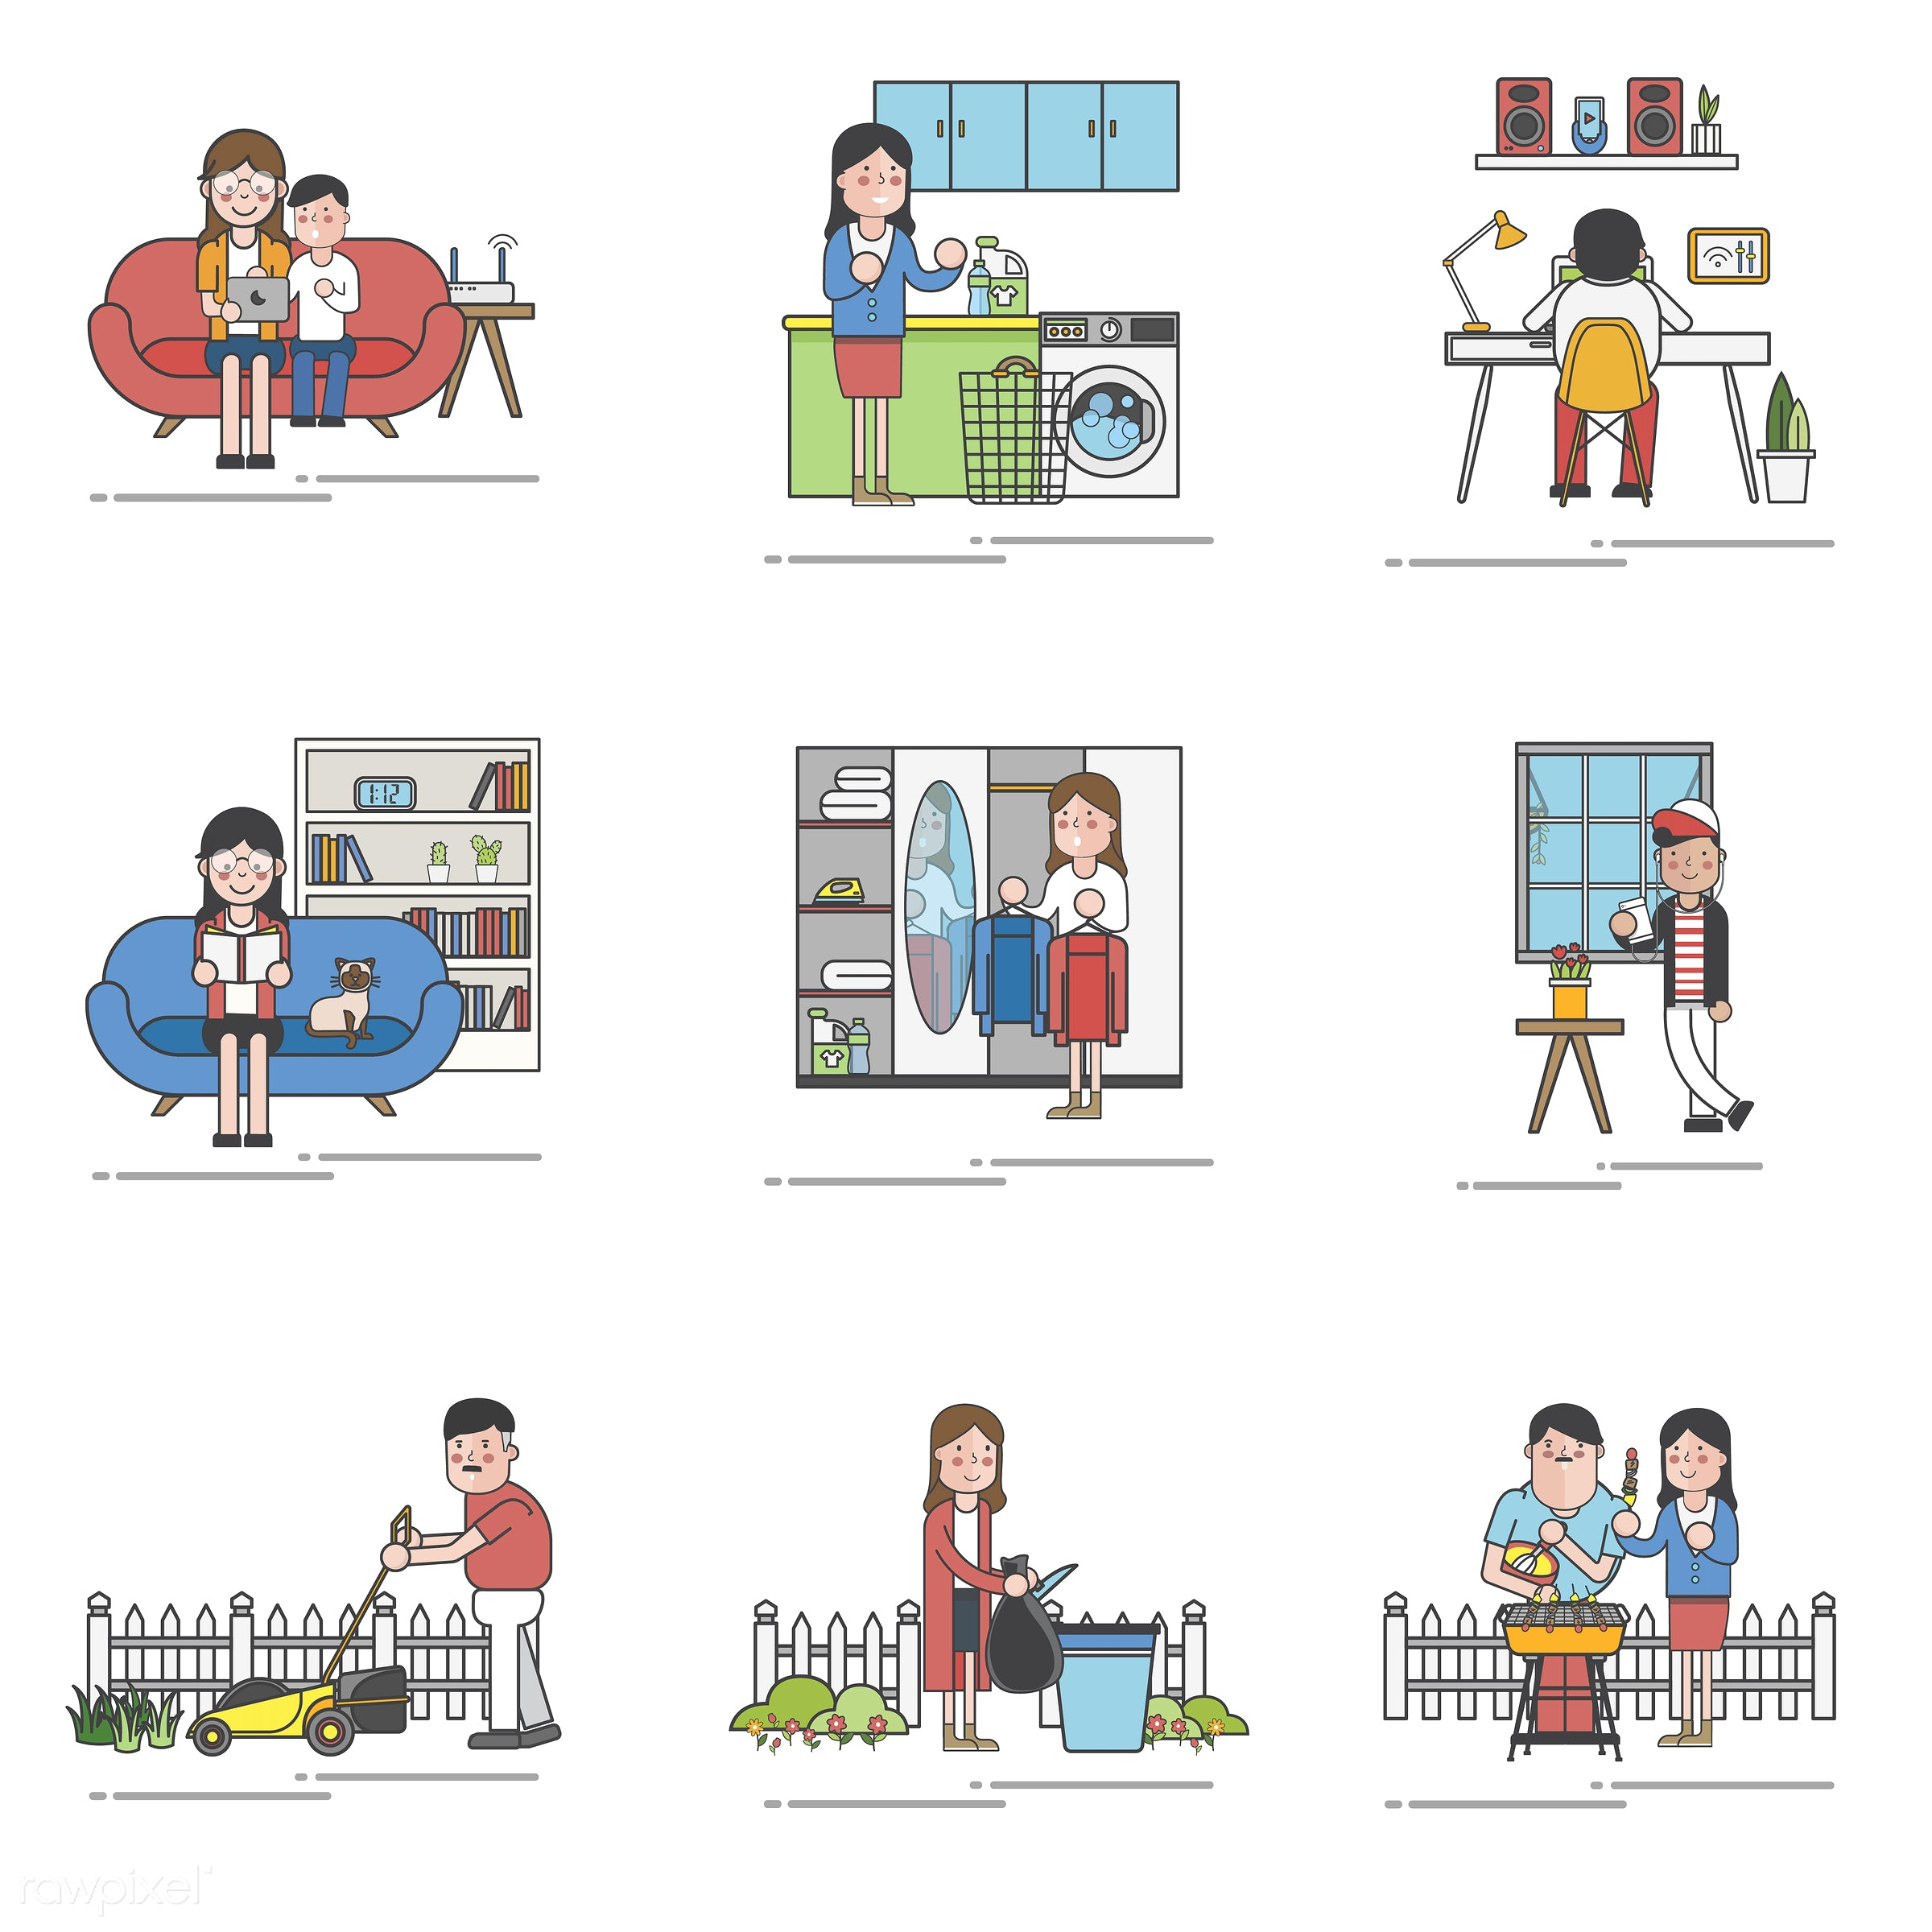 home, house, comfort, homely, cosy, warmth, living, household, residence, pad, abode, dwelling, vector, adults, child, couch...